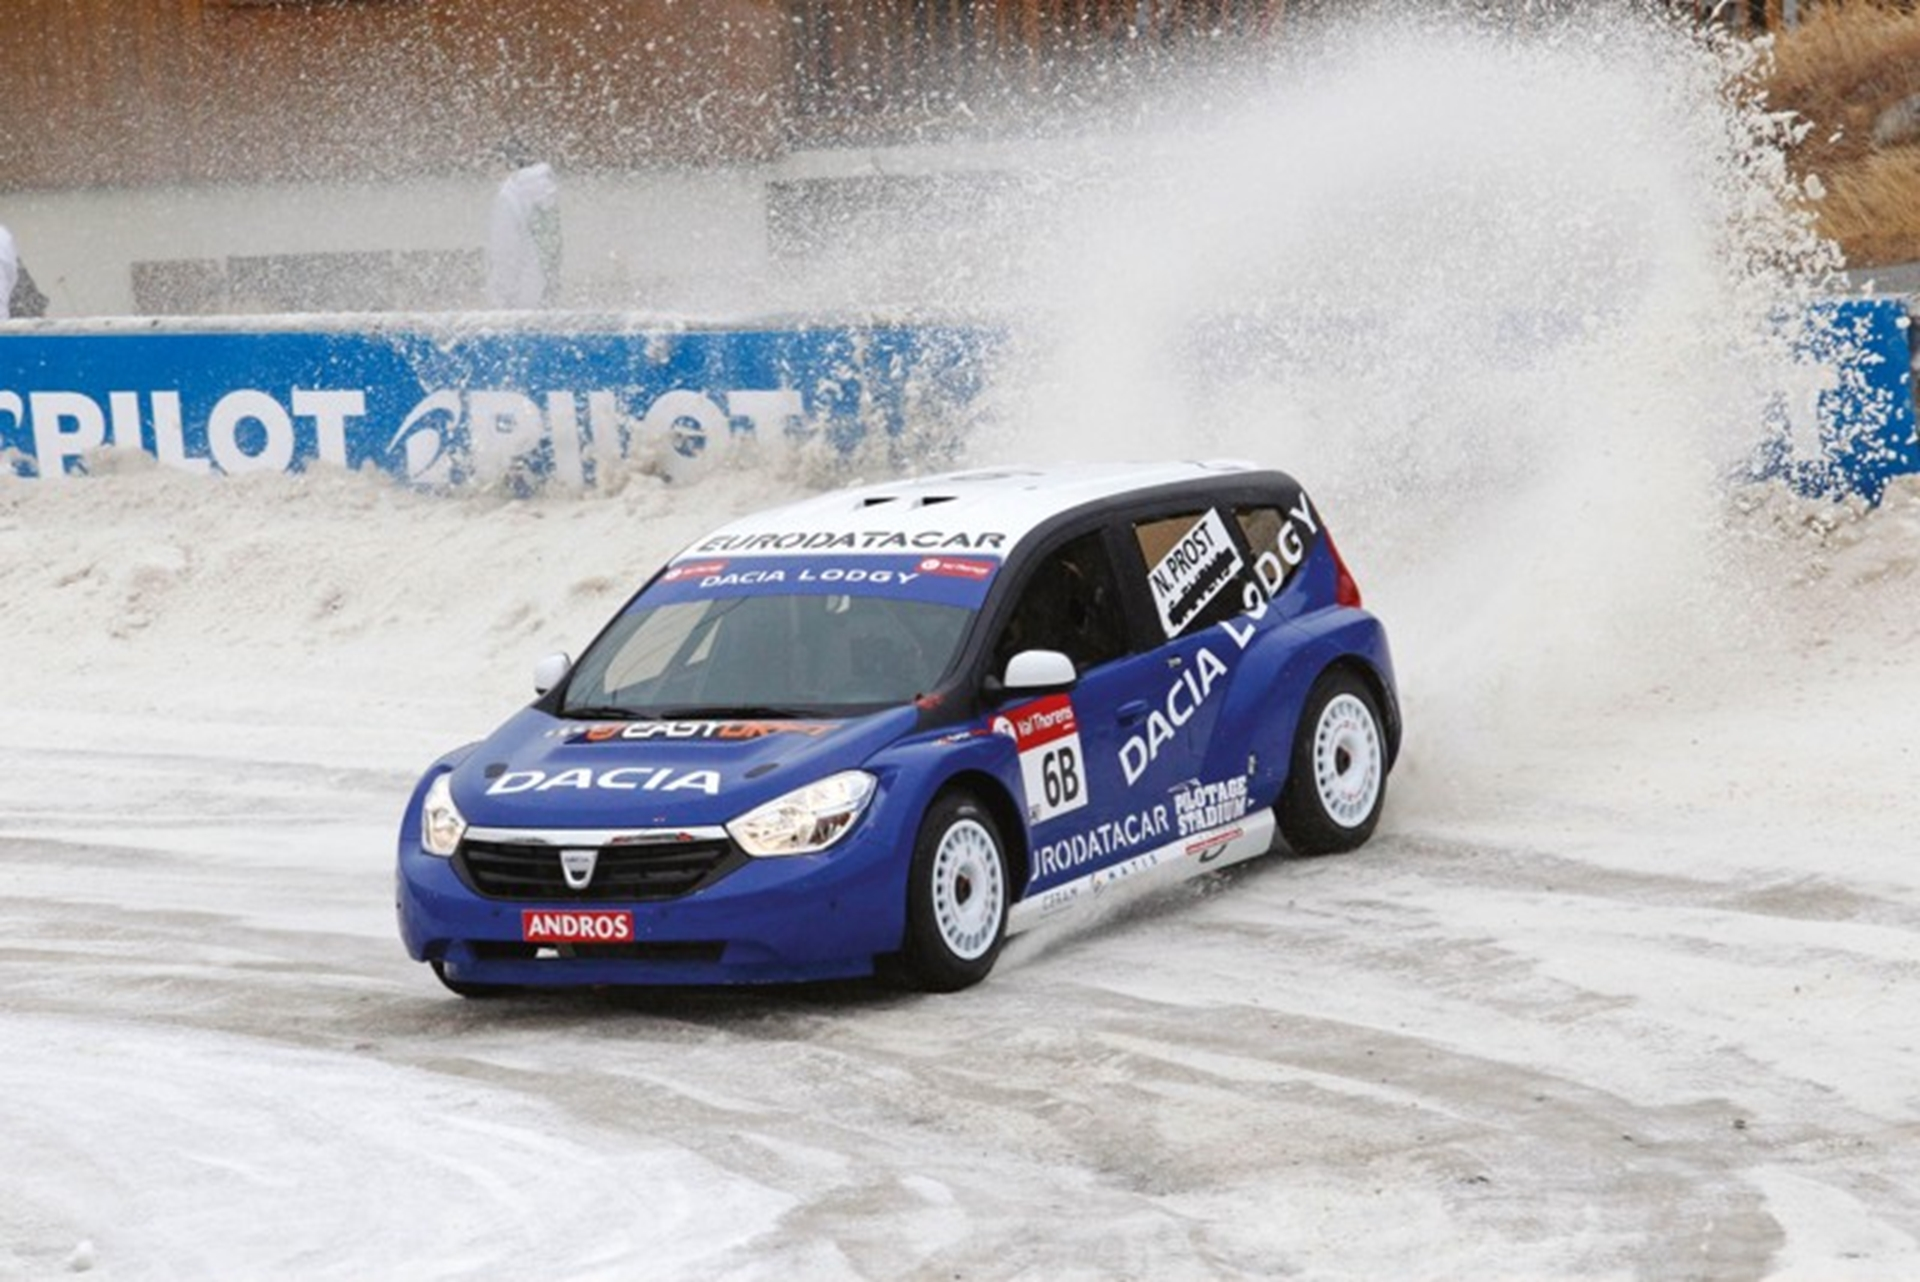 Podium success for Dacia Lodgy Glace3